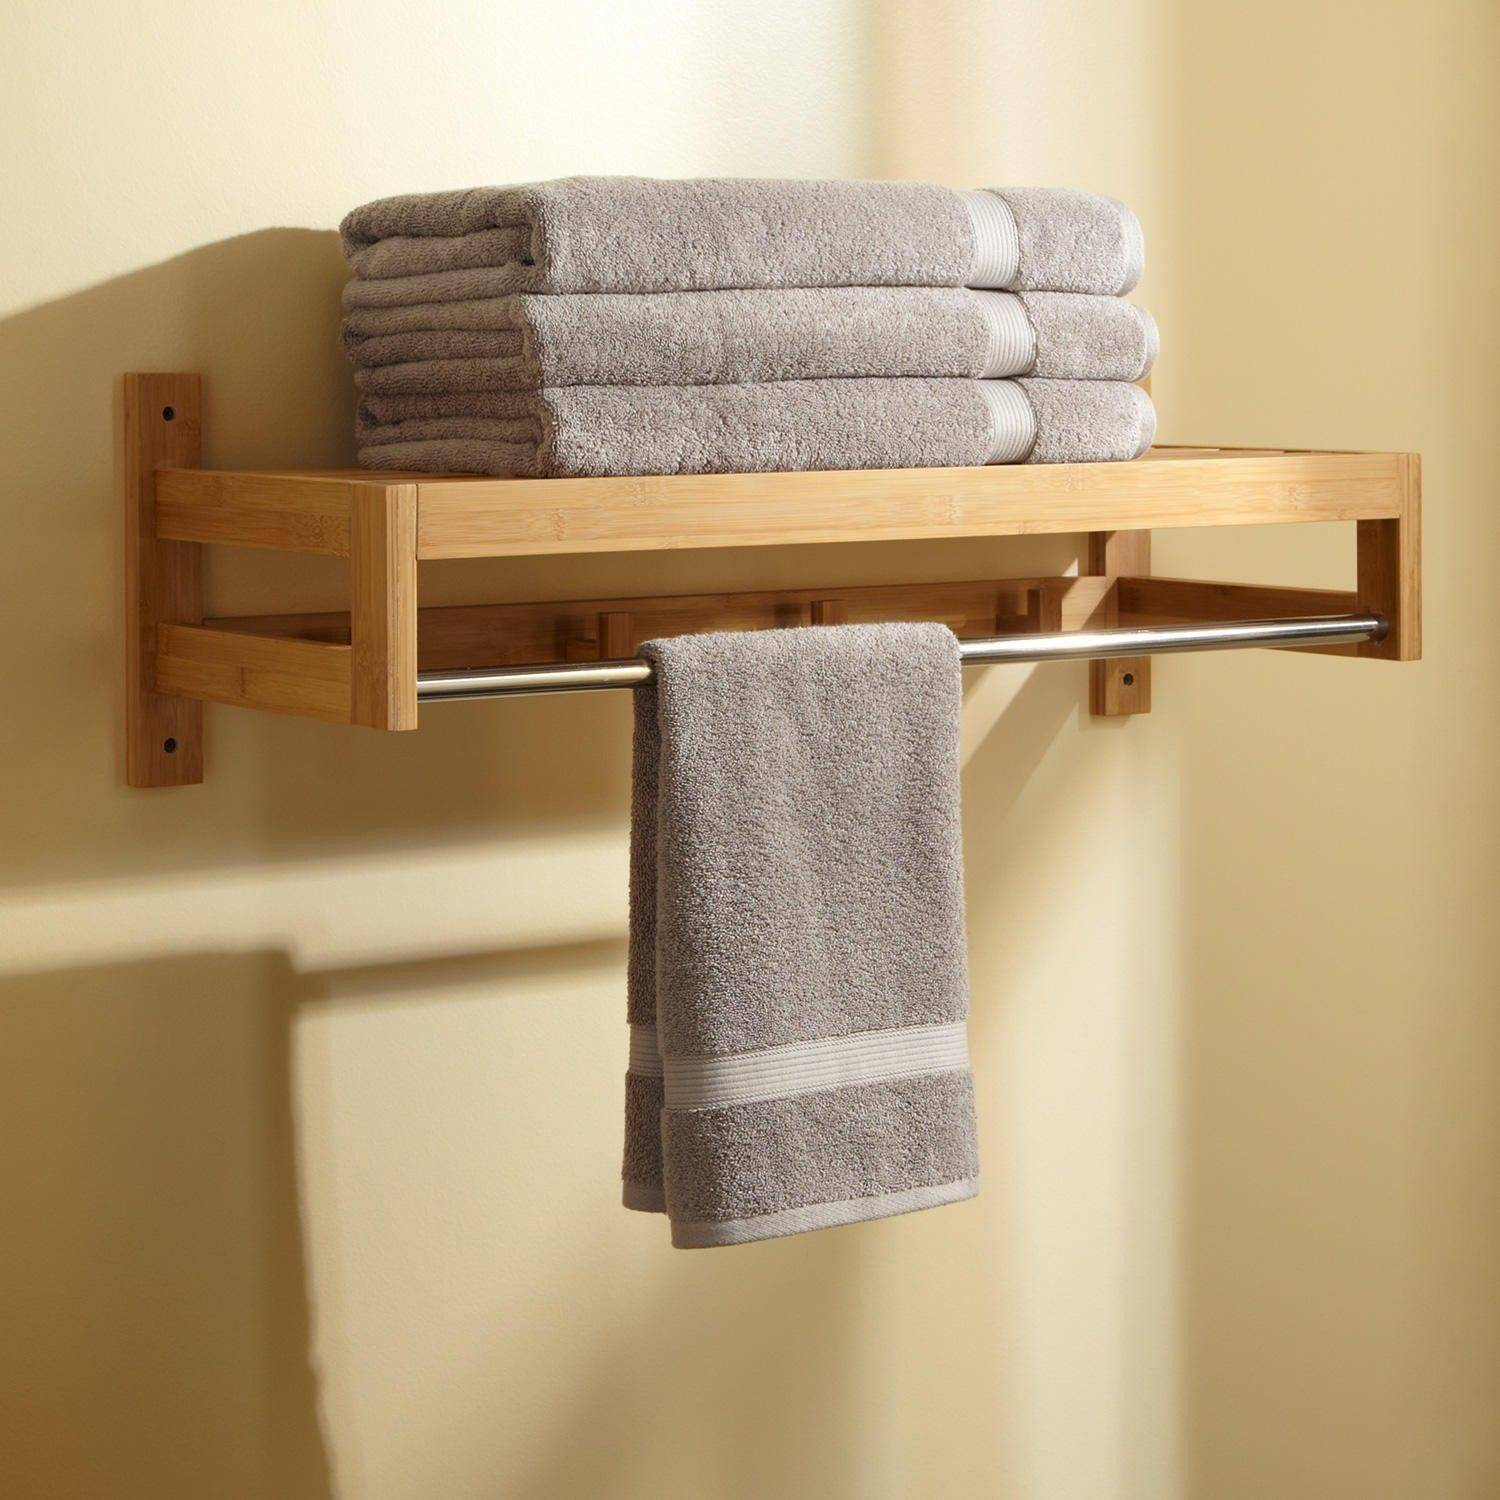 Creative towel Racks New Pathein Bamboo towel Rack with Hooks Love This It Has the